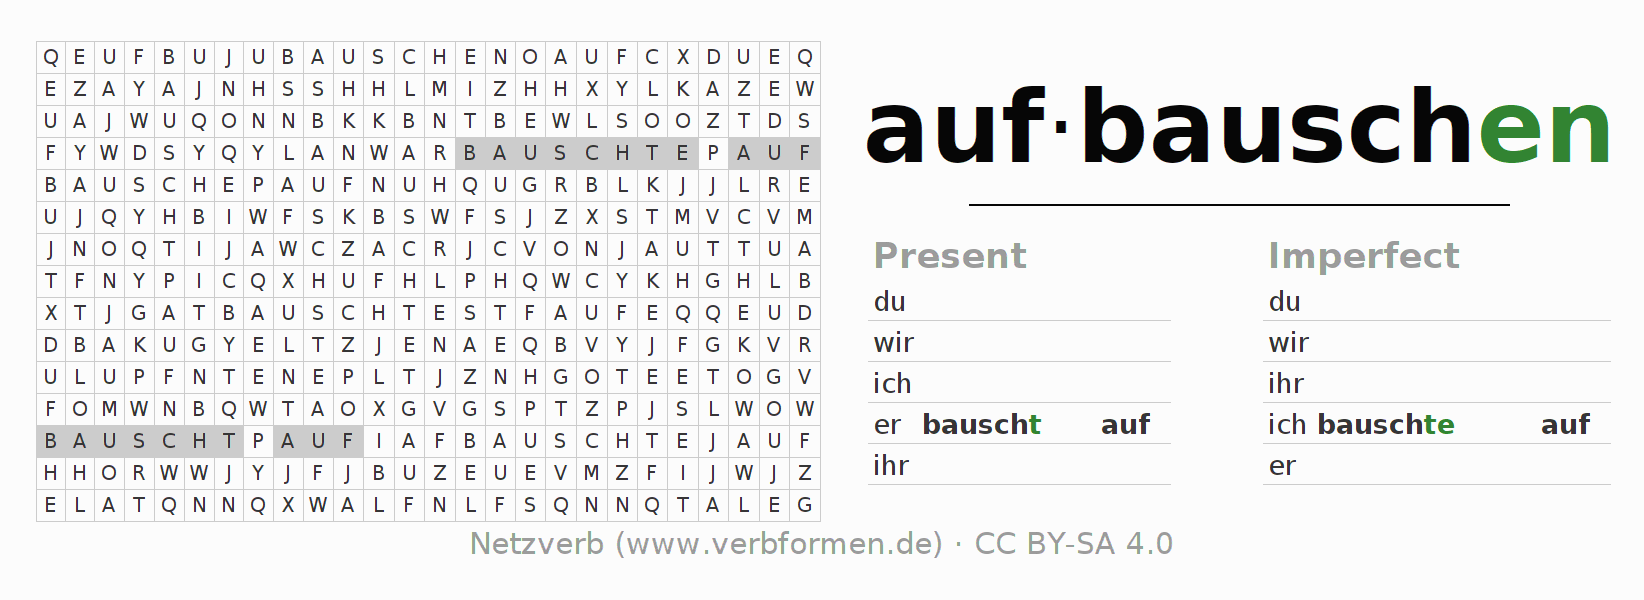 Word search puzzle for the conjugation of the verb aufbauschen